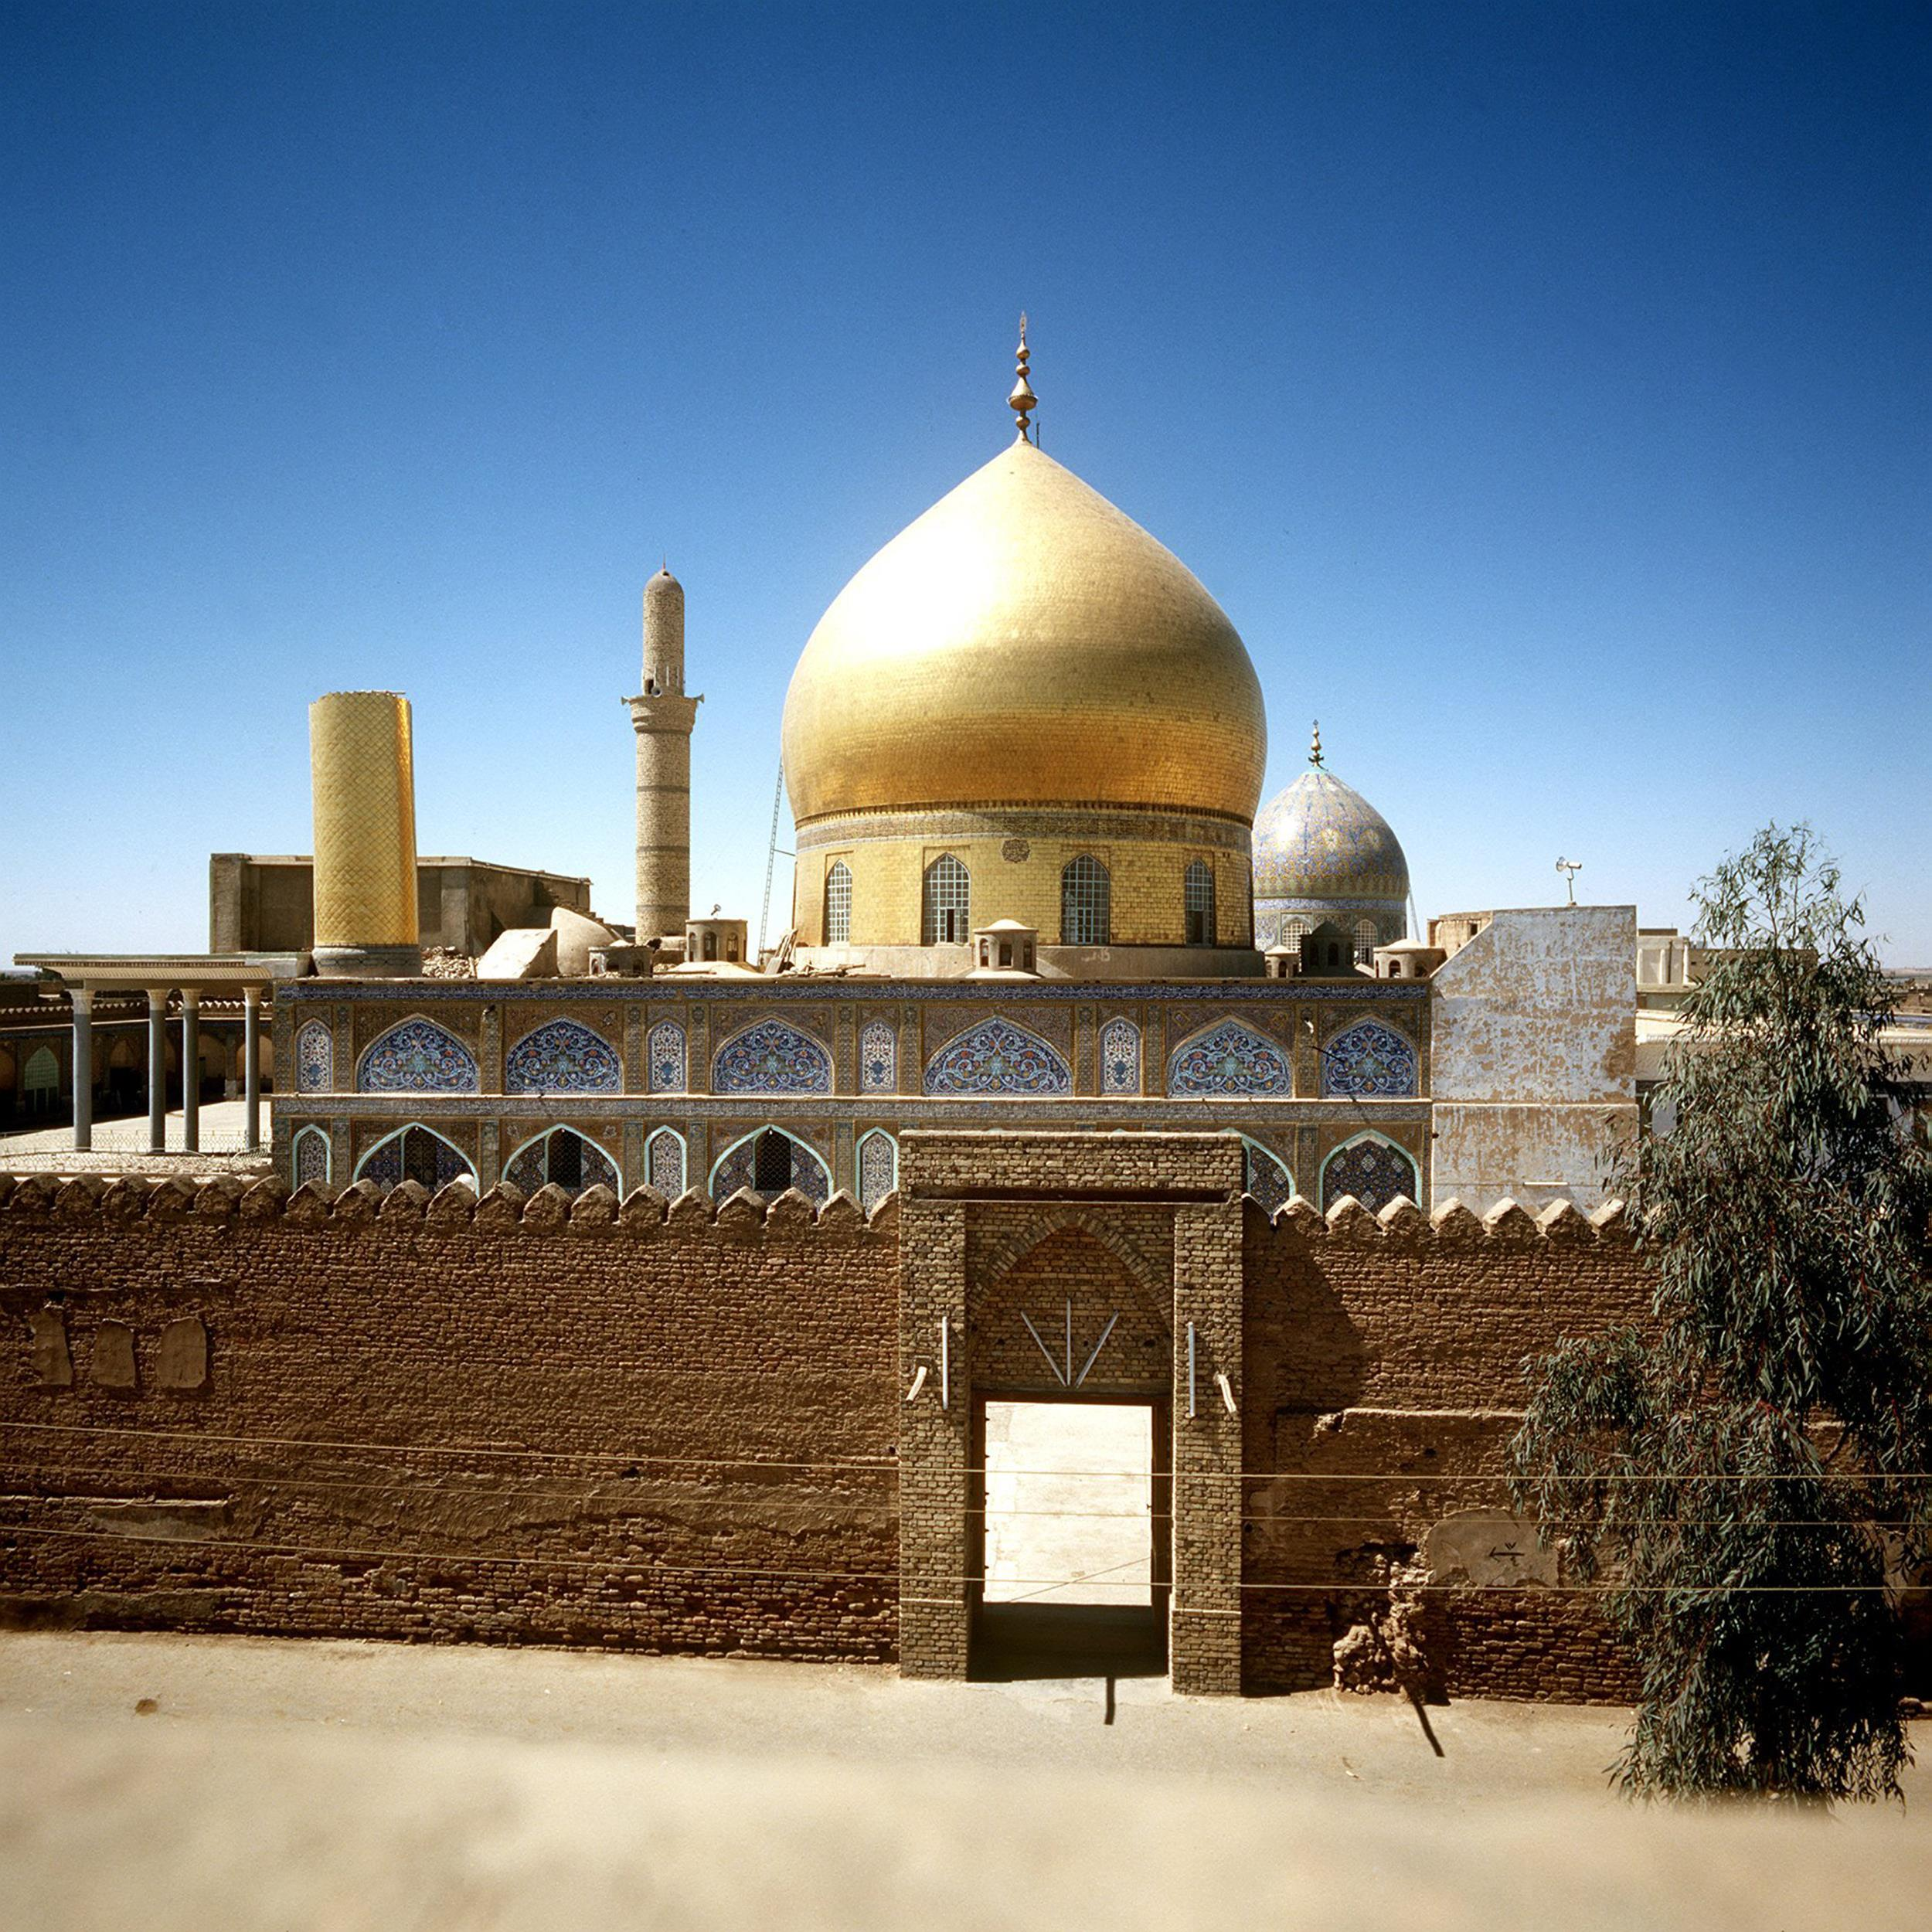 Image: Al-Askari Mosque in Samarra, Iraq